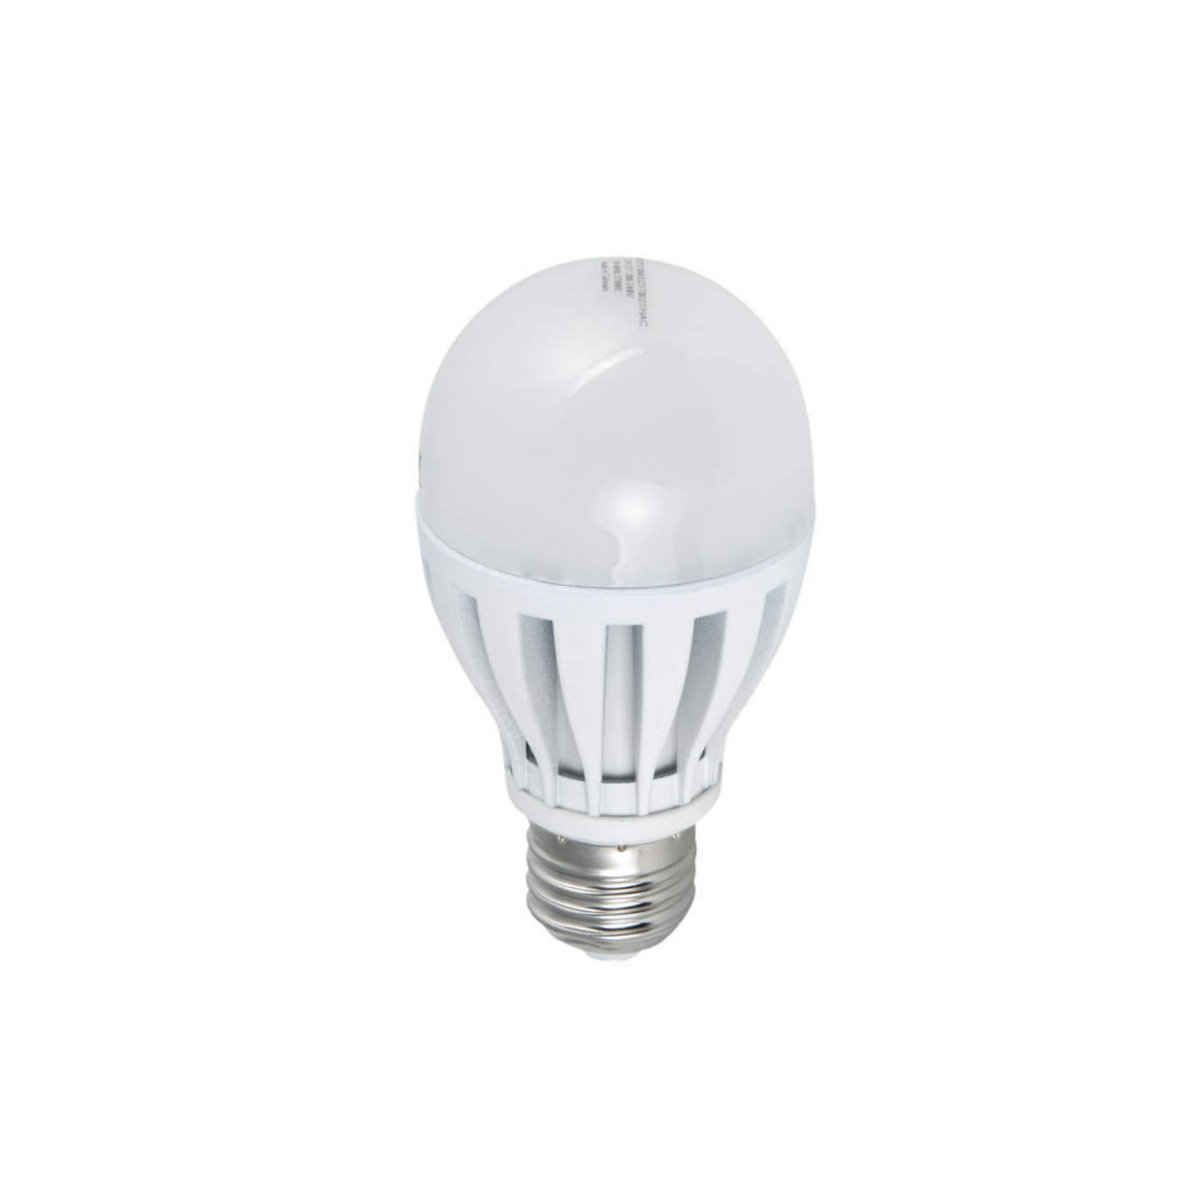 samsung power led birne 17w 12w 10w smd e27 leuchtmittel ball rund bulb dimmbar ebay. Black Bedroom Furniture Sets. Home Design Ideas